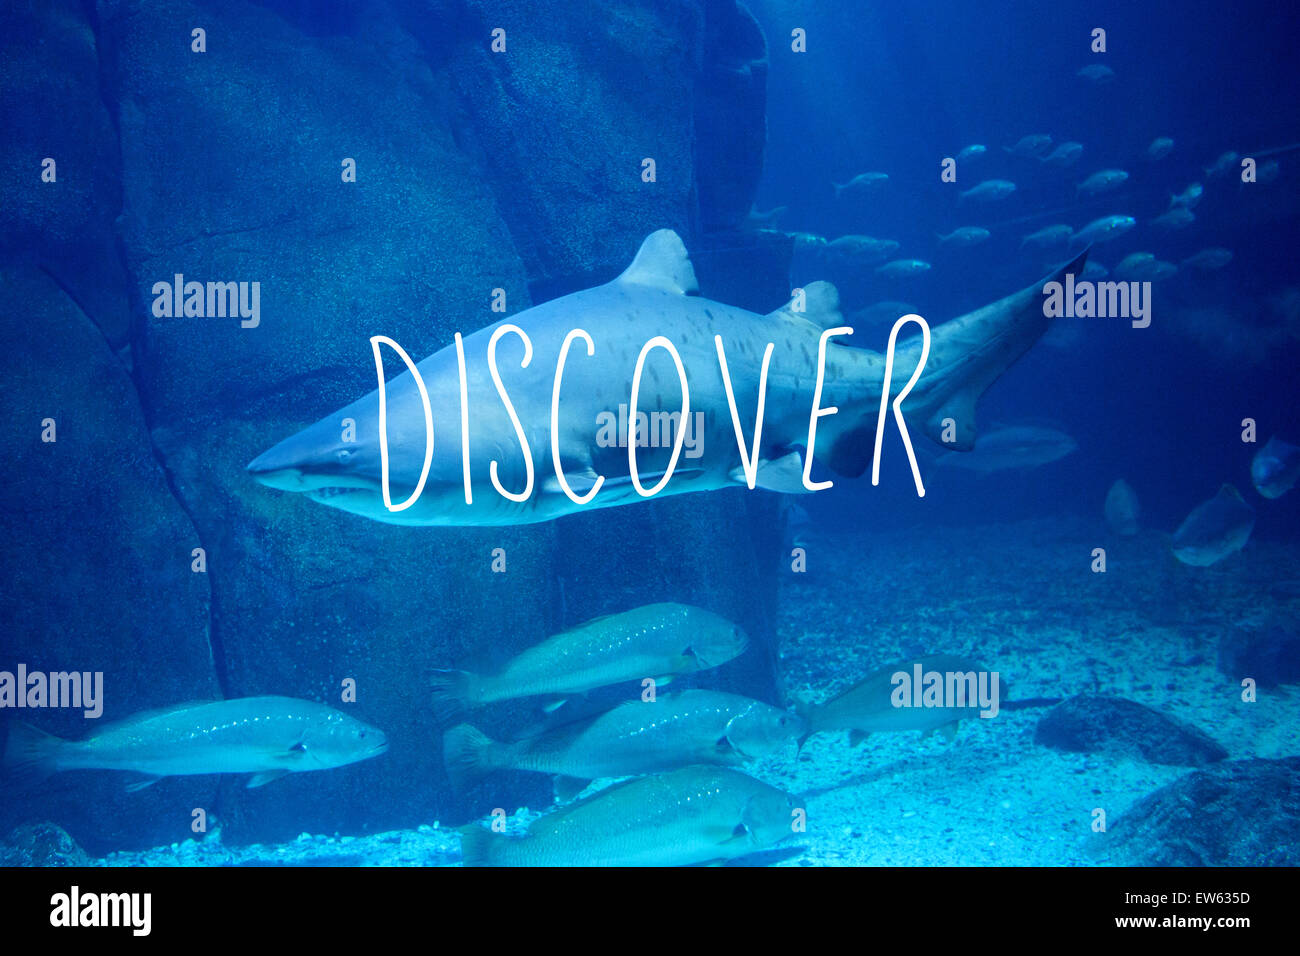 Composite image of discover - Stock Image